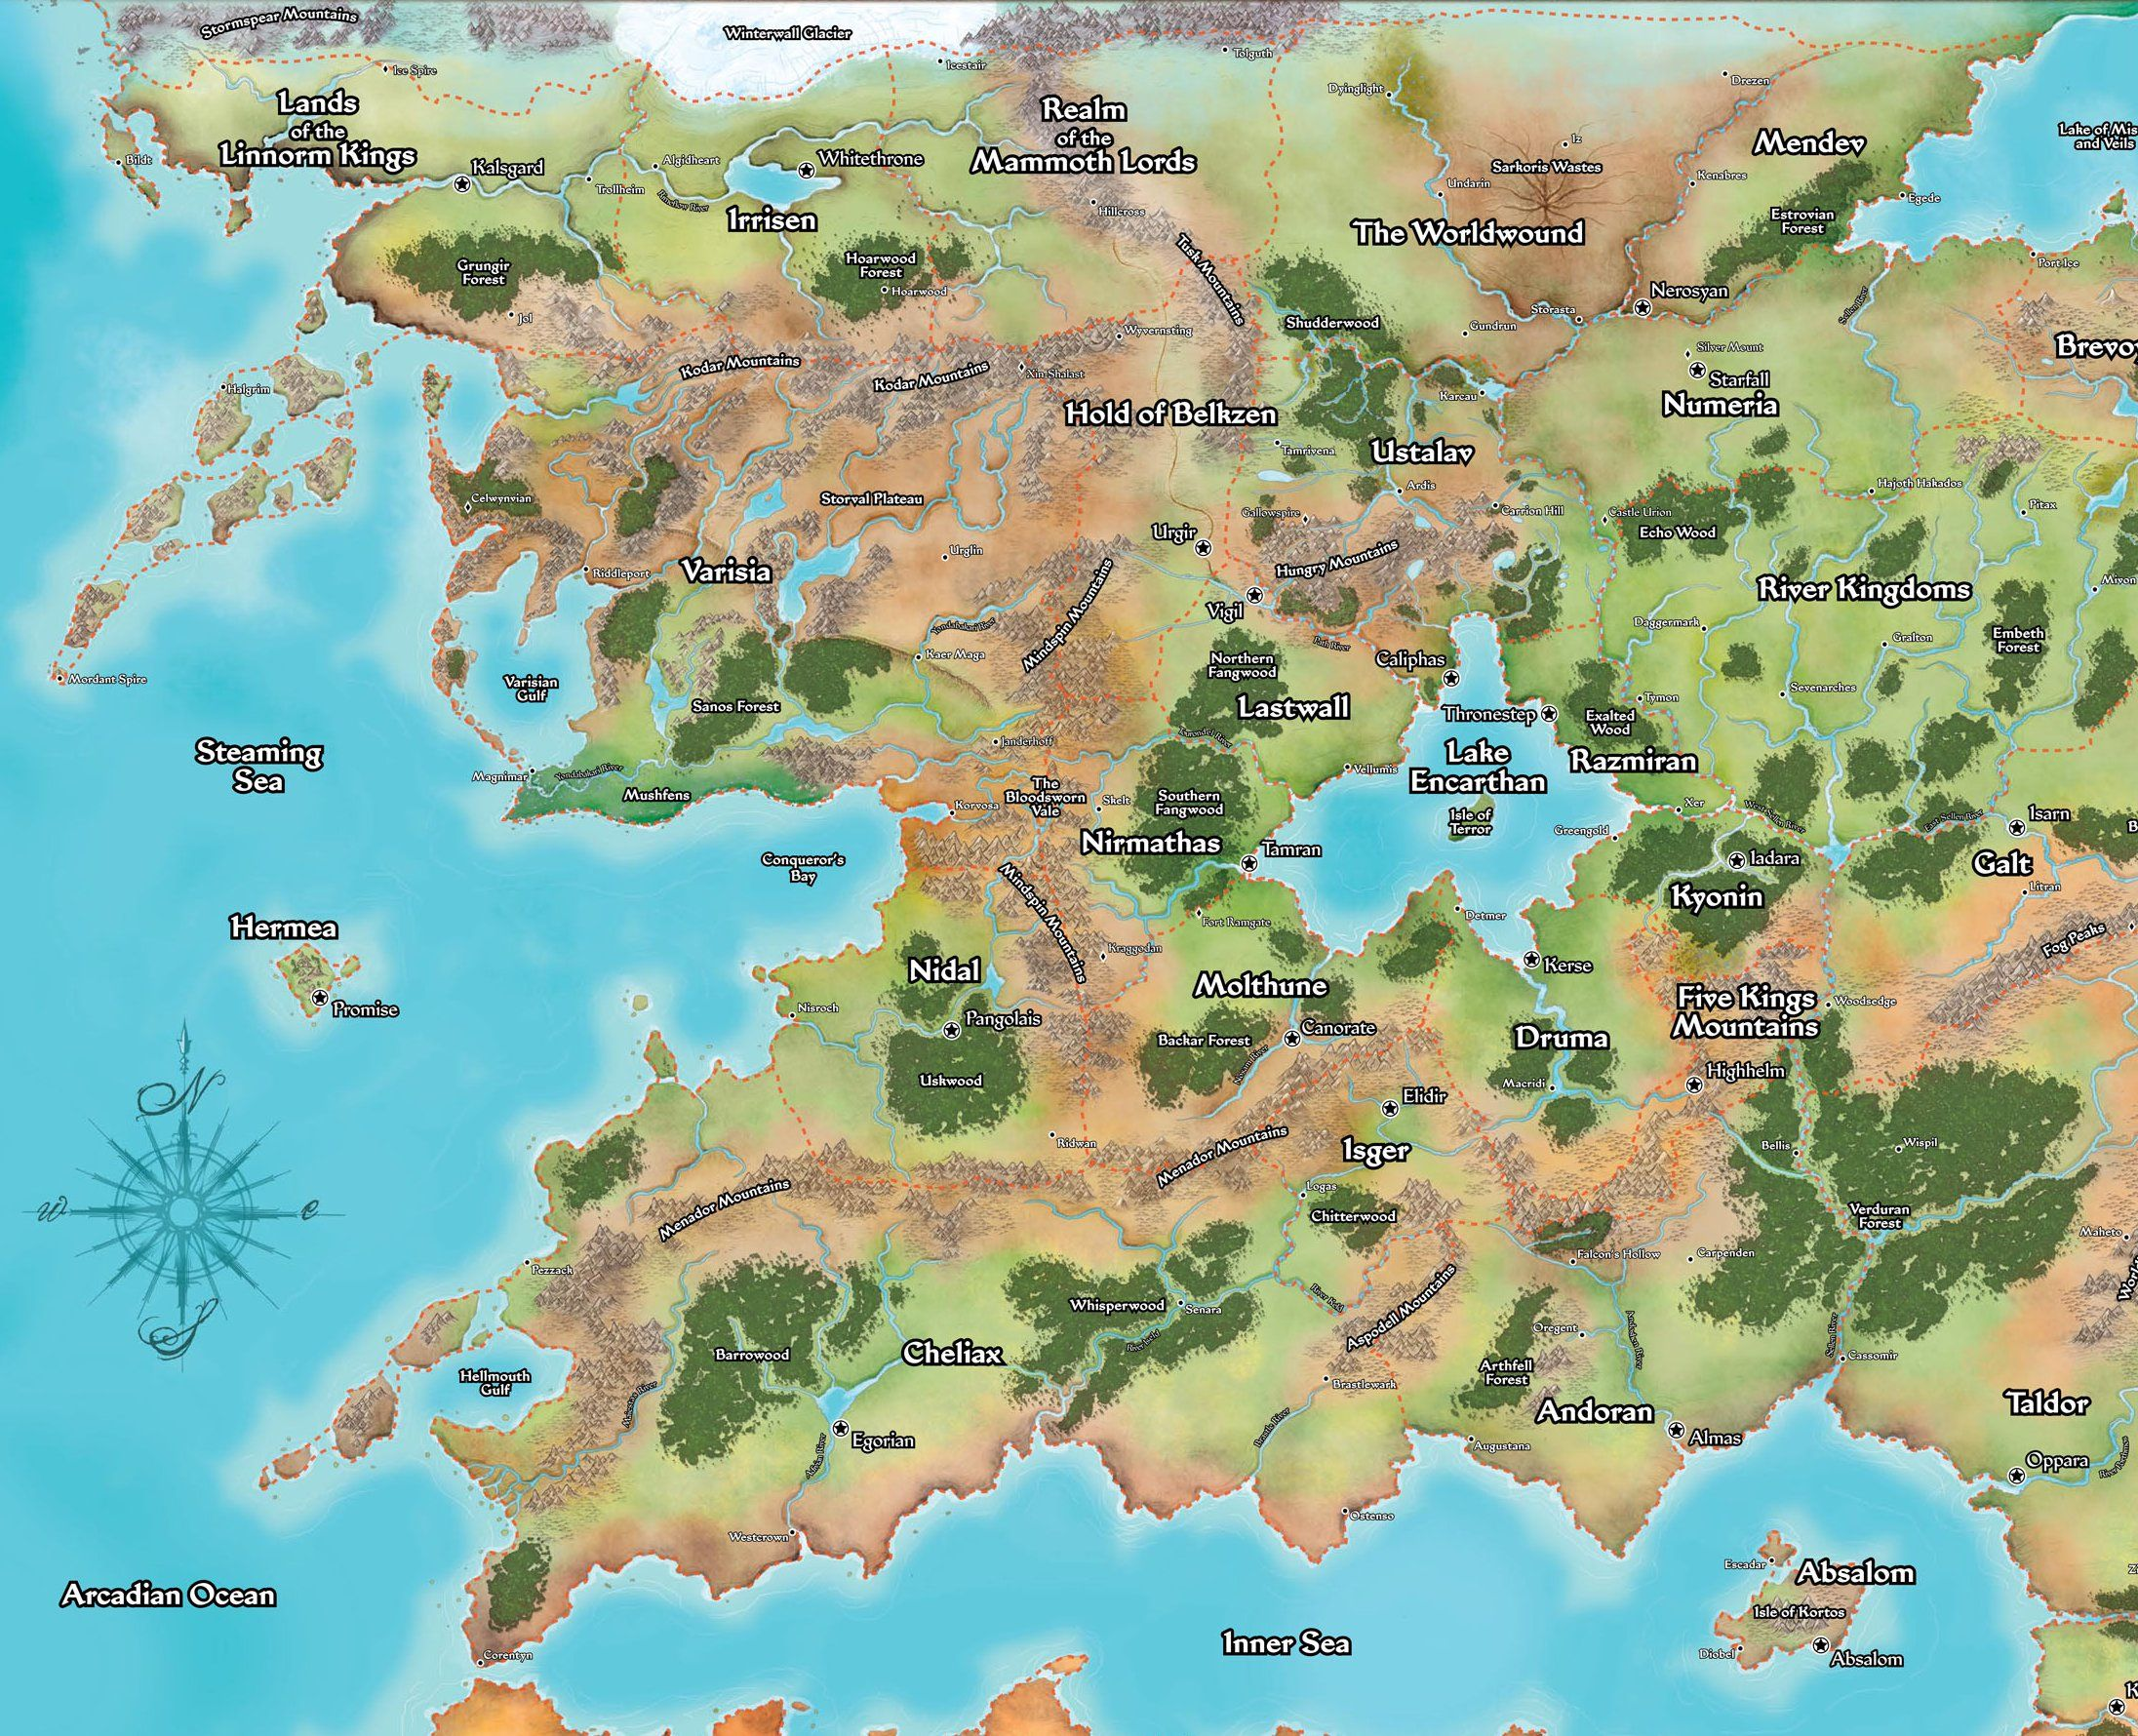 Pin by Steven Austin on Meval Terrain Maps in 2019 ... Golarion Map on nirmathas map, darklands map, crypt of the everflame map, rust island map, tian xia map, rpg map, greyhawk map, mystara map, zakhara map, pathfinder map, toril map, magnimar map, elsir vale map, absalom map, inner sea map, ustalav map, varisia map, cerilia map, dragonlance world map, river kingdoms map,